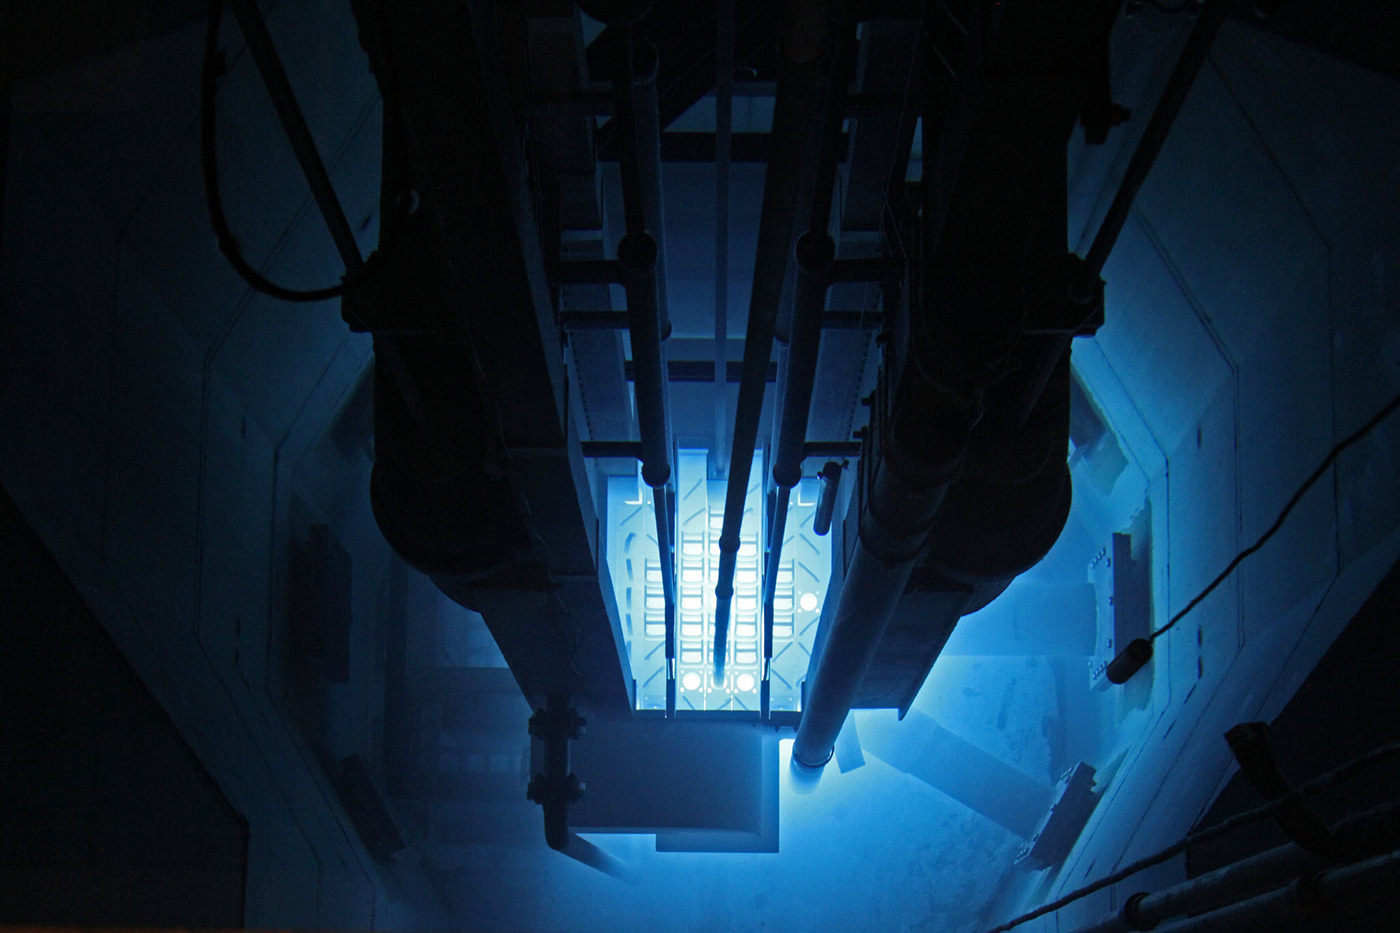 View from above of the Nuclear Reactor core. The Radiological Sciences Program at the University of Massachusetts Lowell offers a Bachelor of Science degree in Physics (Radiological Health Physics option), a Master of Science degree in Radiological Sciences and Protection, and a Doctor of Philosophy degree in Physics (Radiological Sciences option).